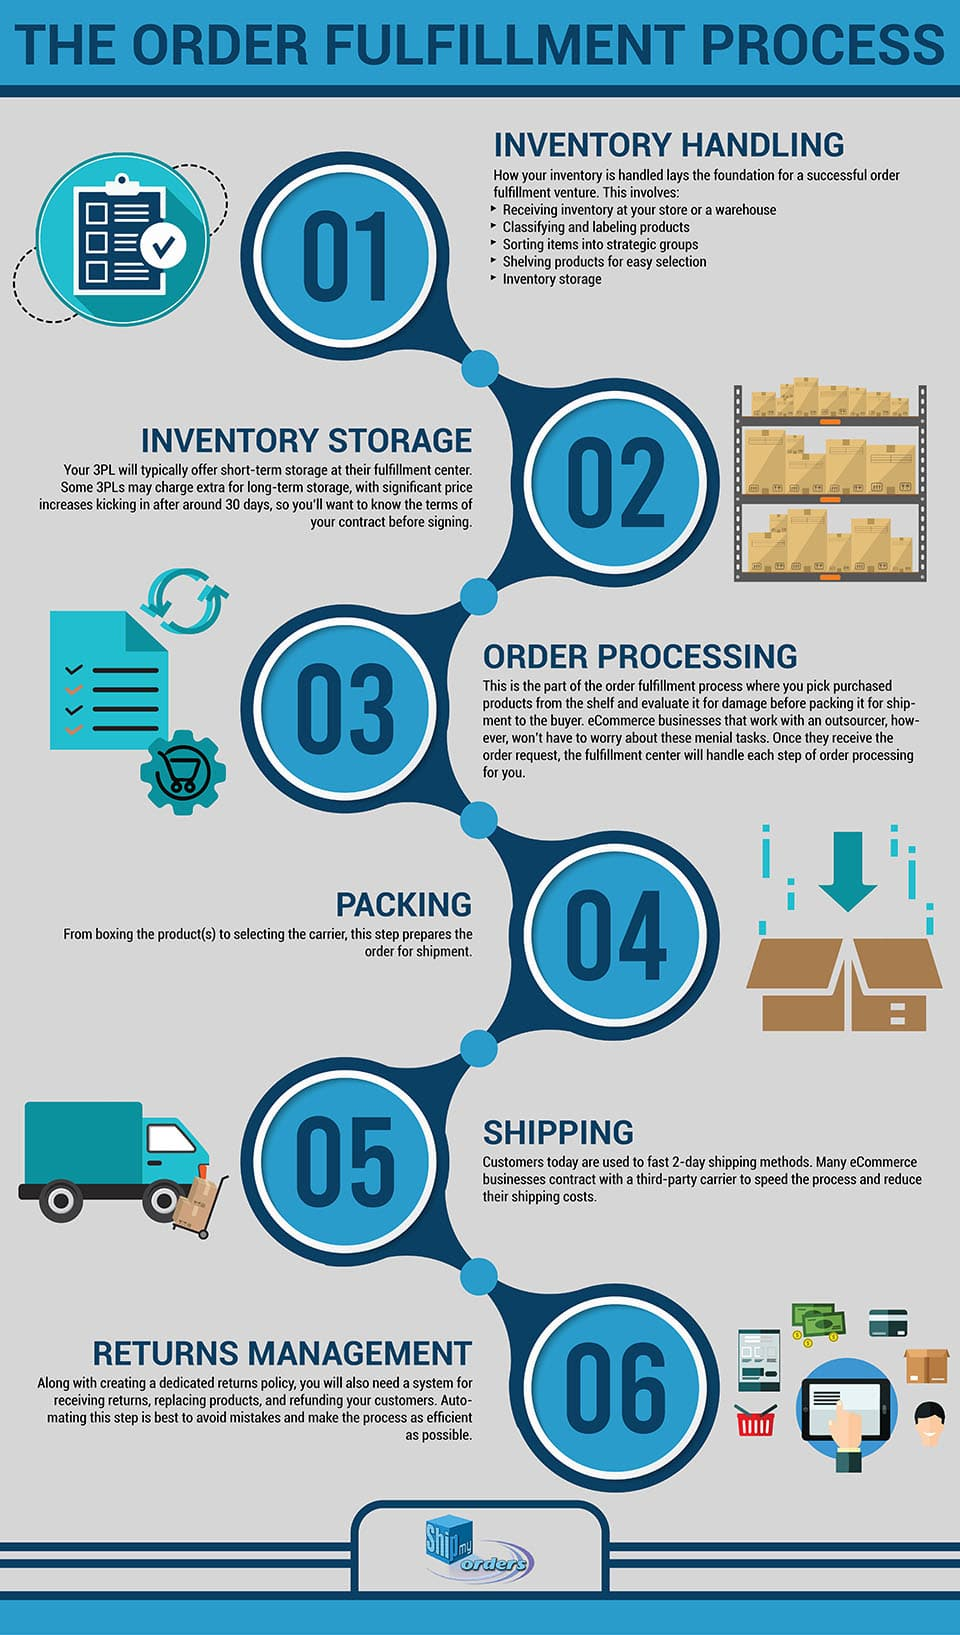 Order Fulfillment Process infographic